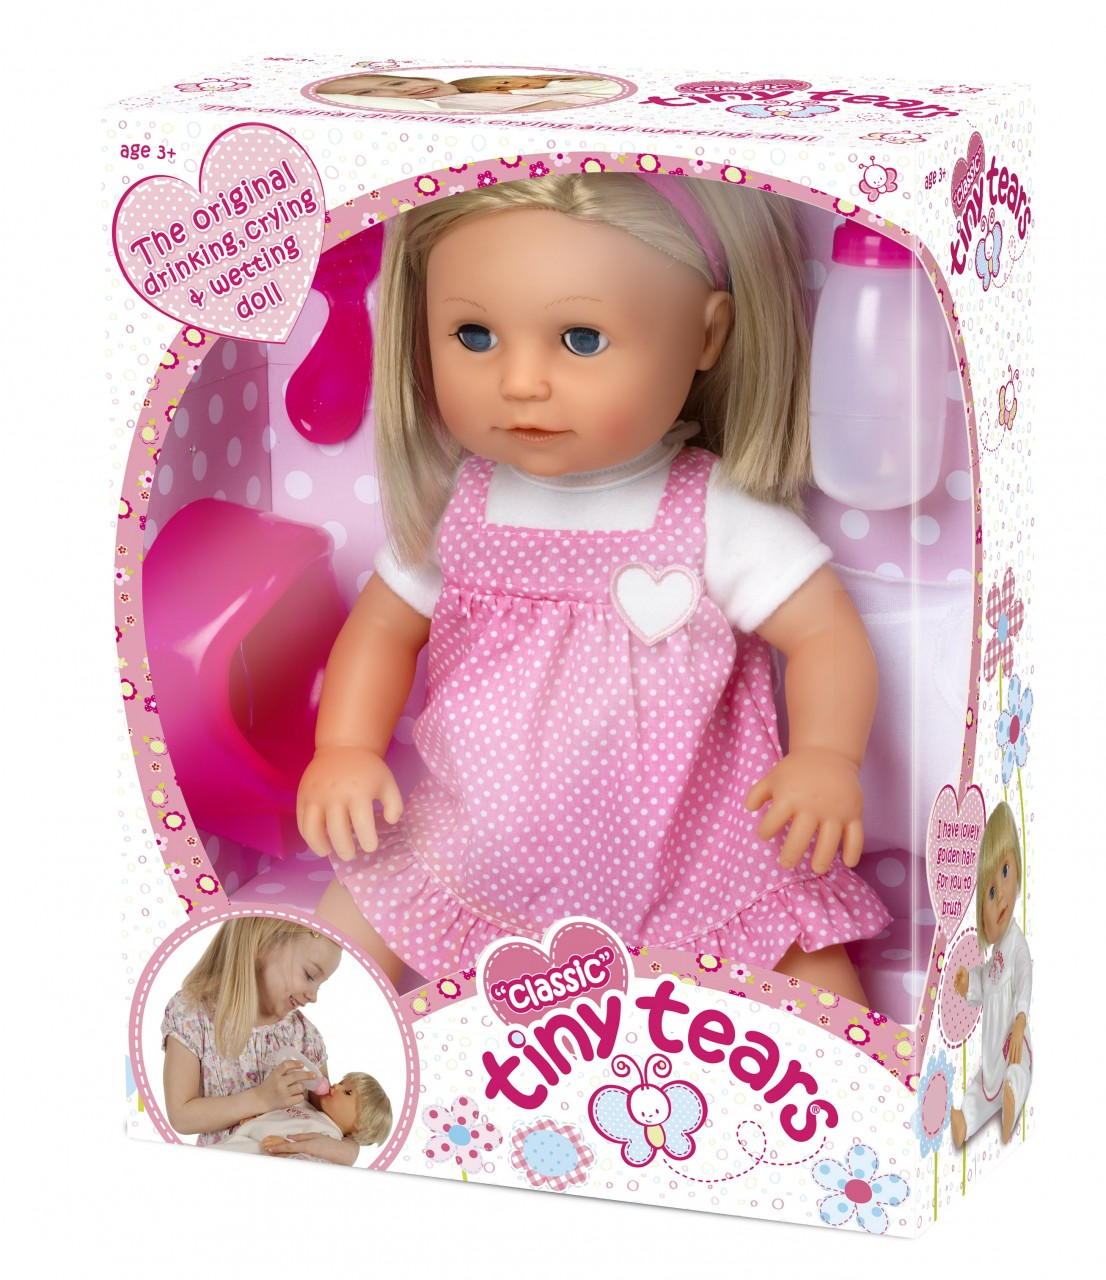 Small Toy Dolls : Tiny tears loved by parents parenting news